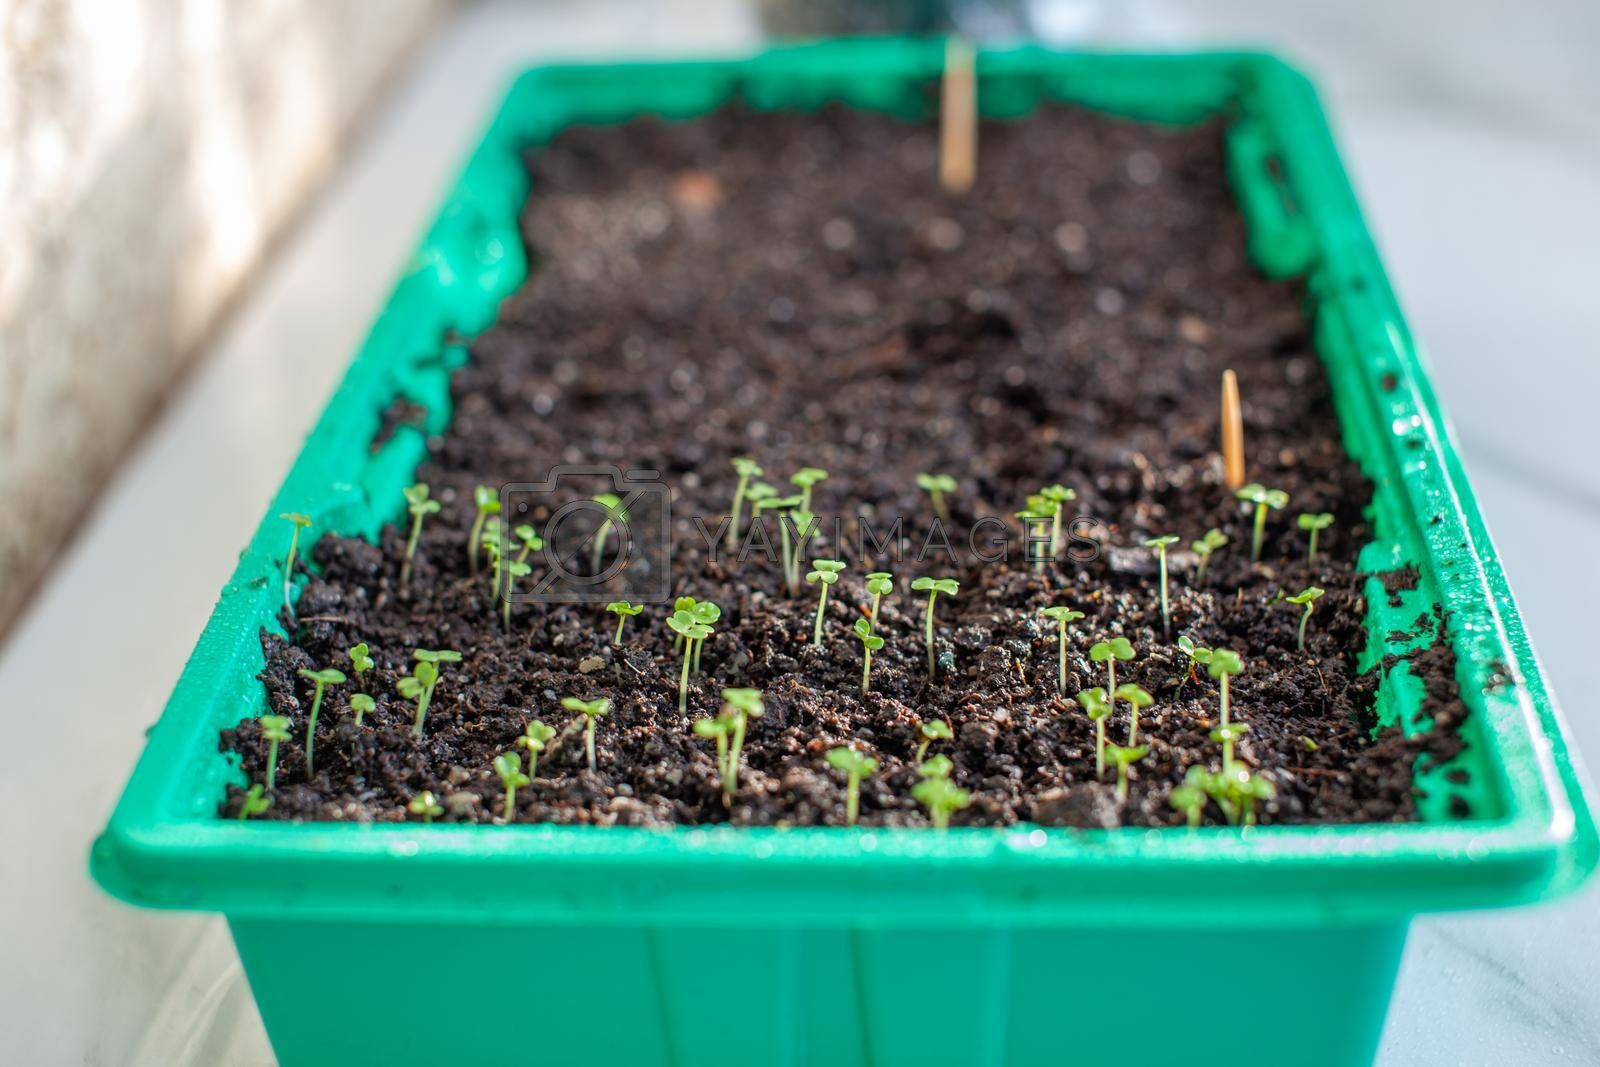 Planting young seedlings in a large pot on the table, at home. A young sprout of delicious greens for salad.